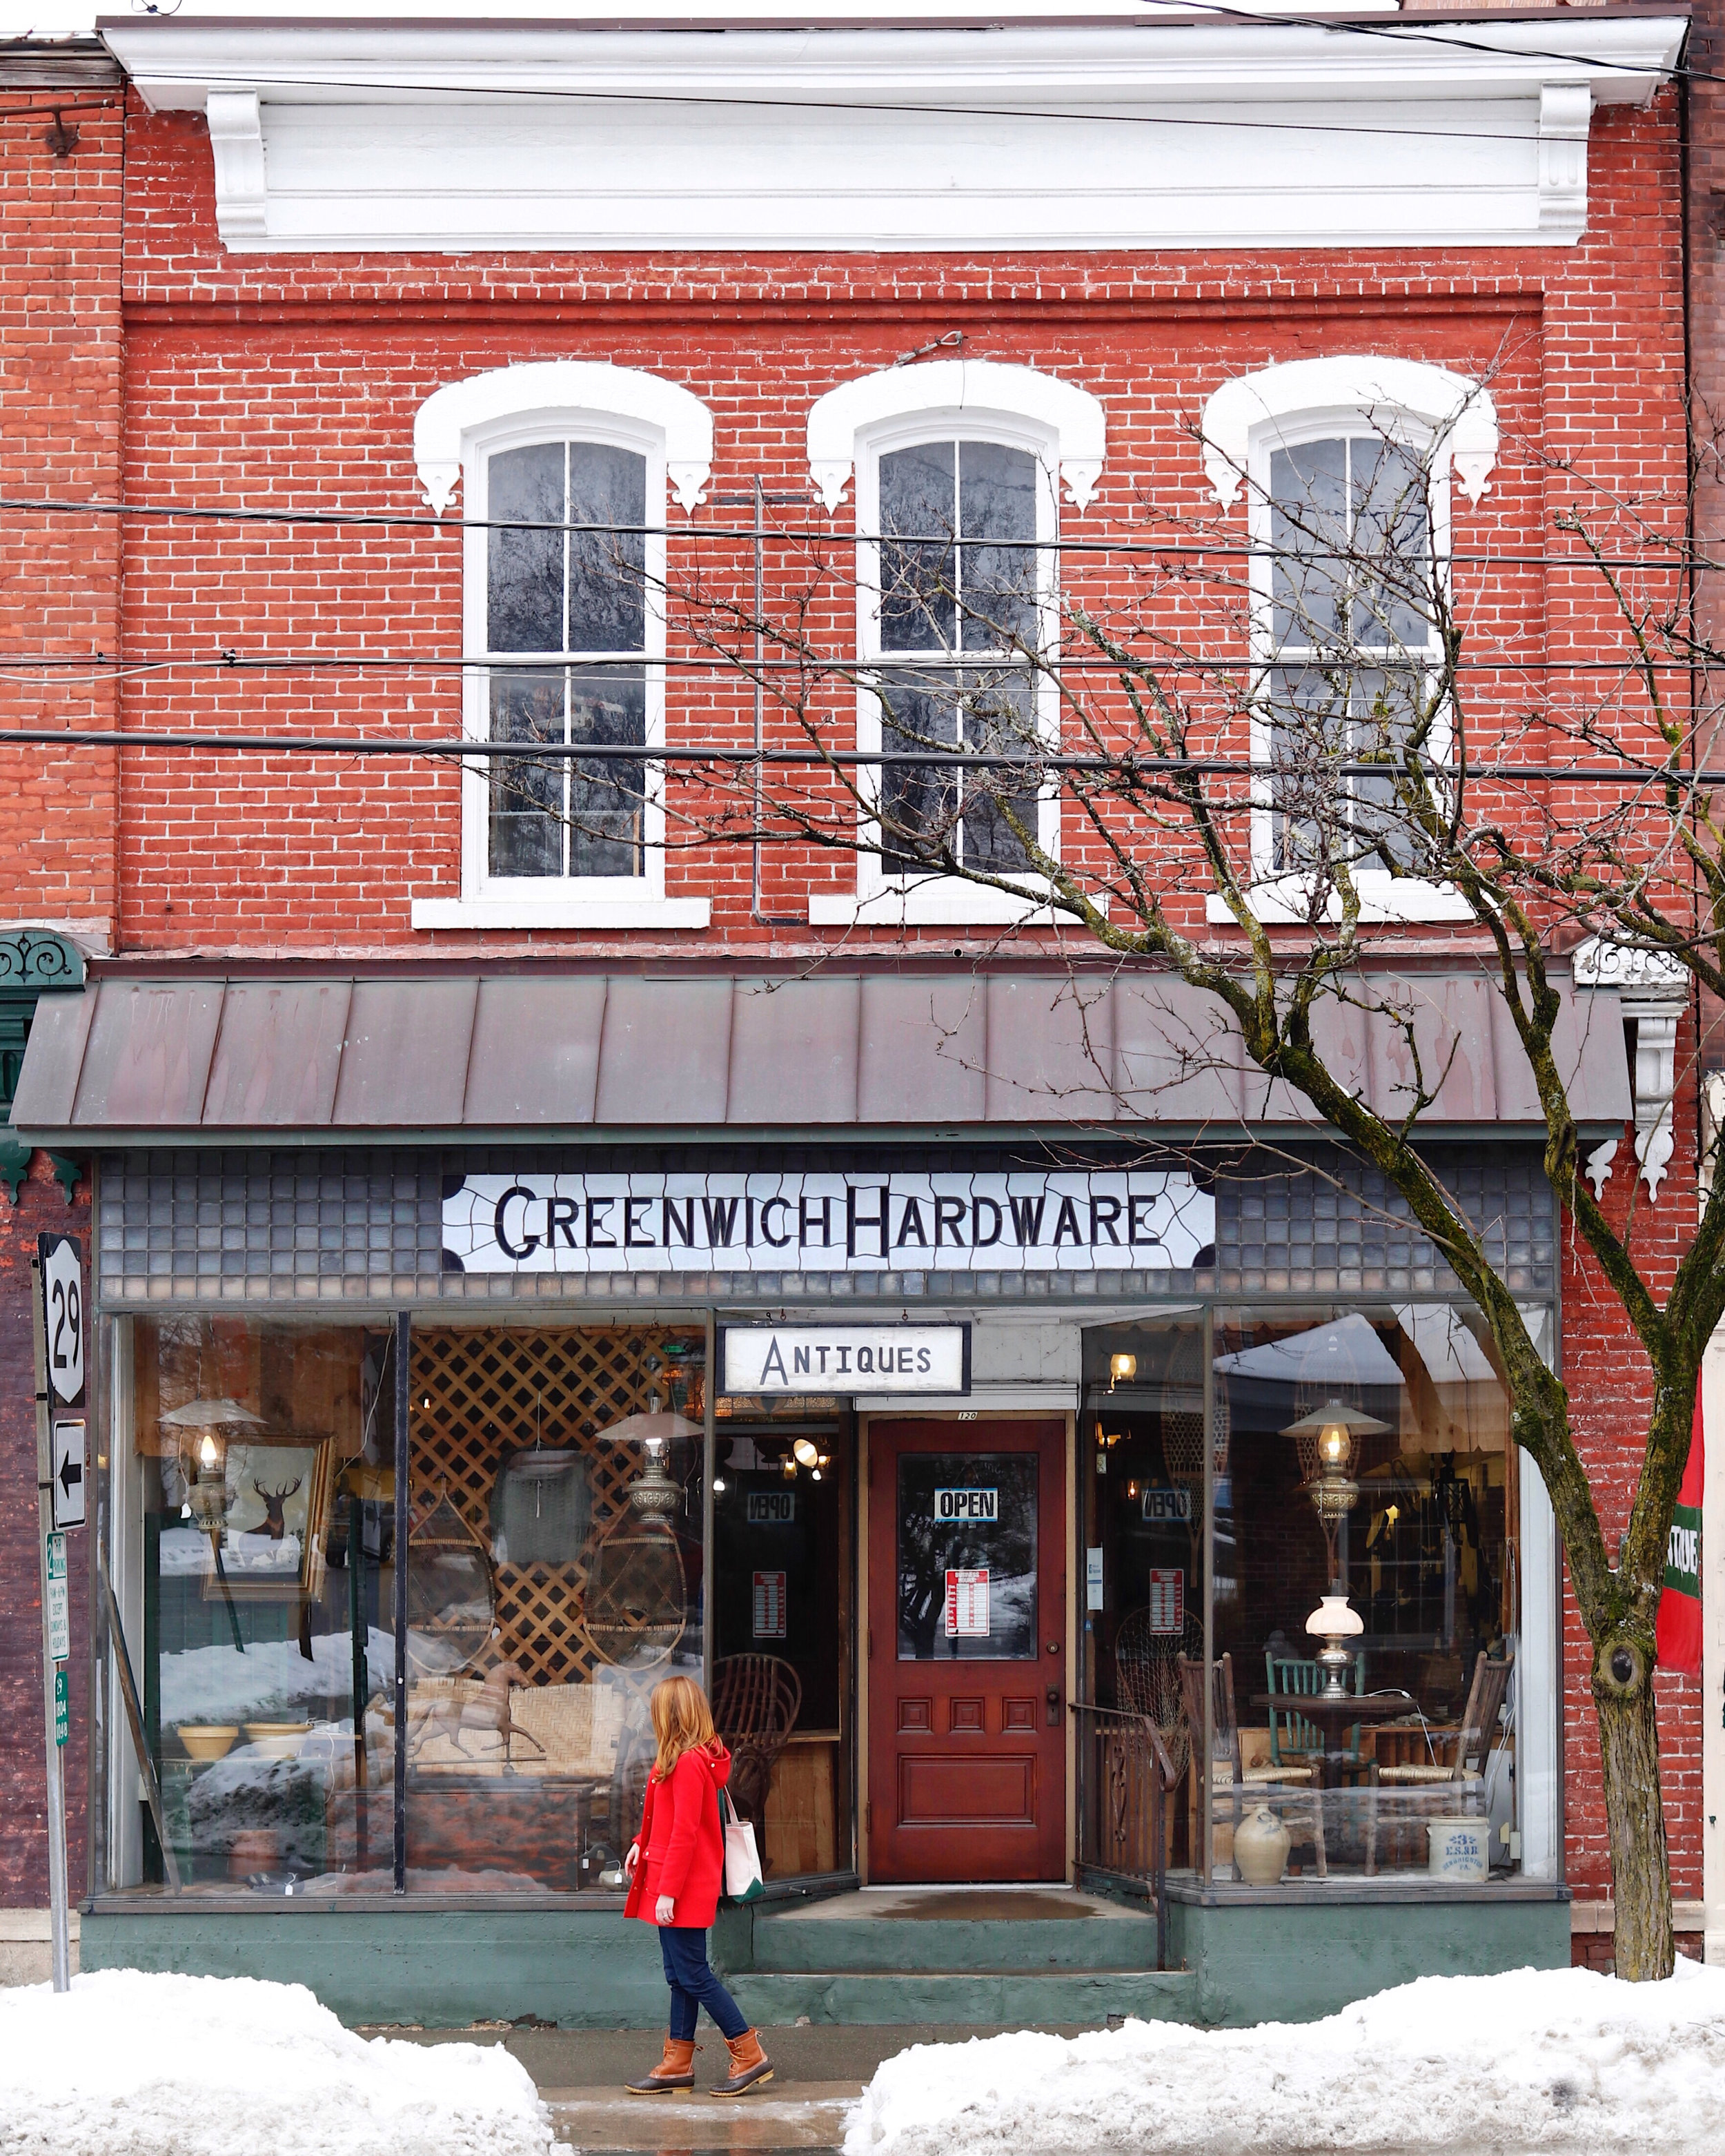 Greenwich Hardware Antiques Washington County NY